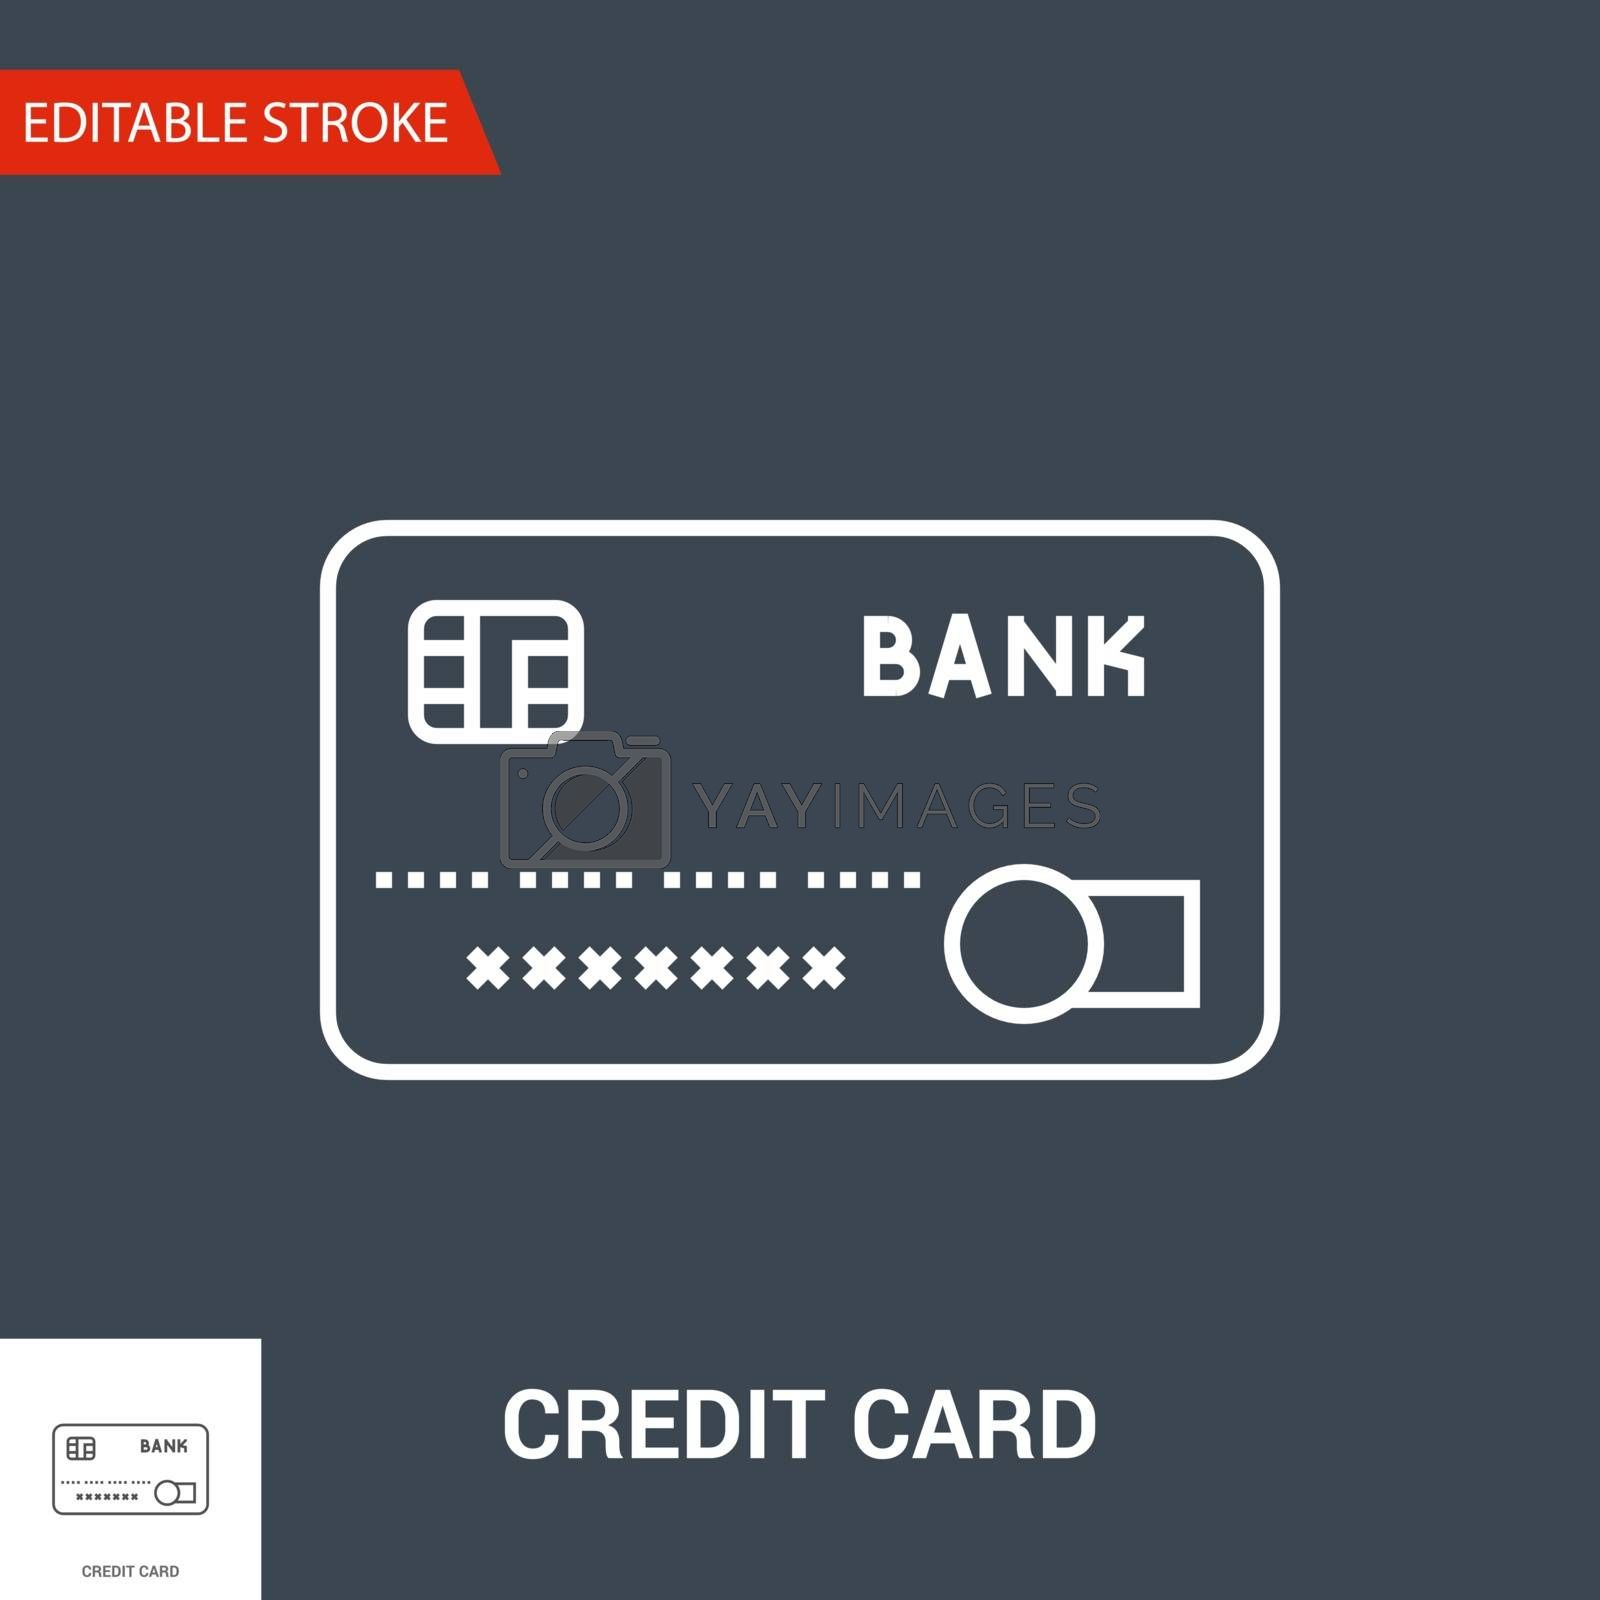 Credit Card Icon. Thin Line Vector Illustration - Adjust stroke weight - Expand to any Size - Easy Change Colour - Editable Stroke